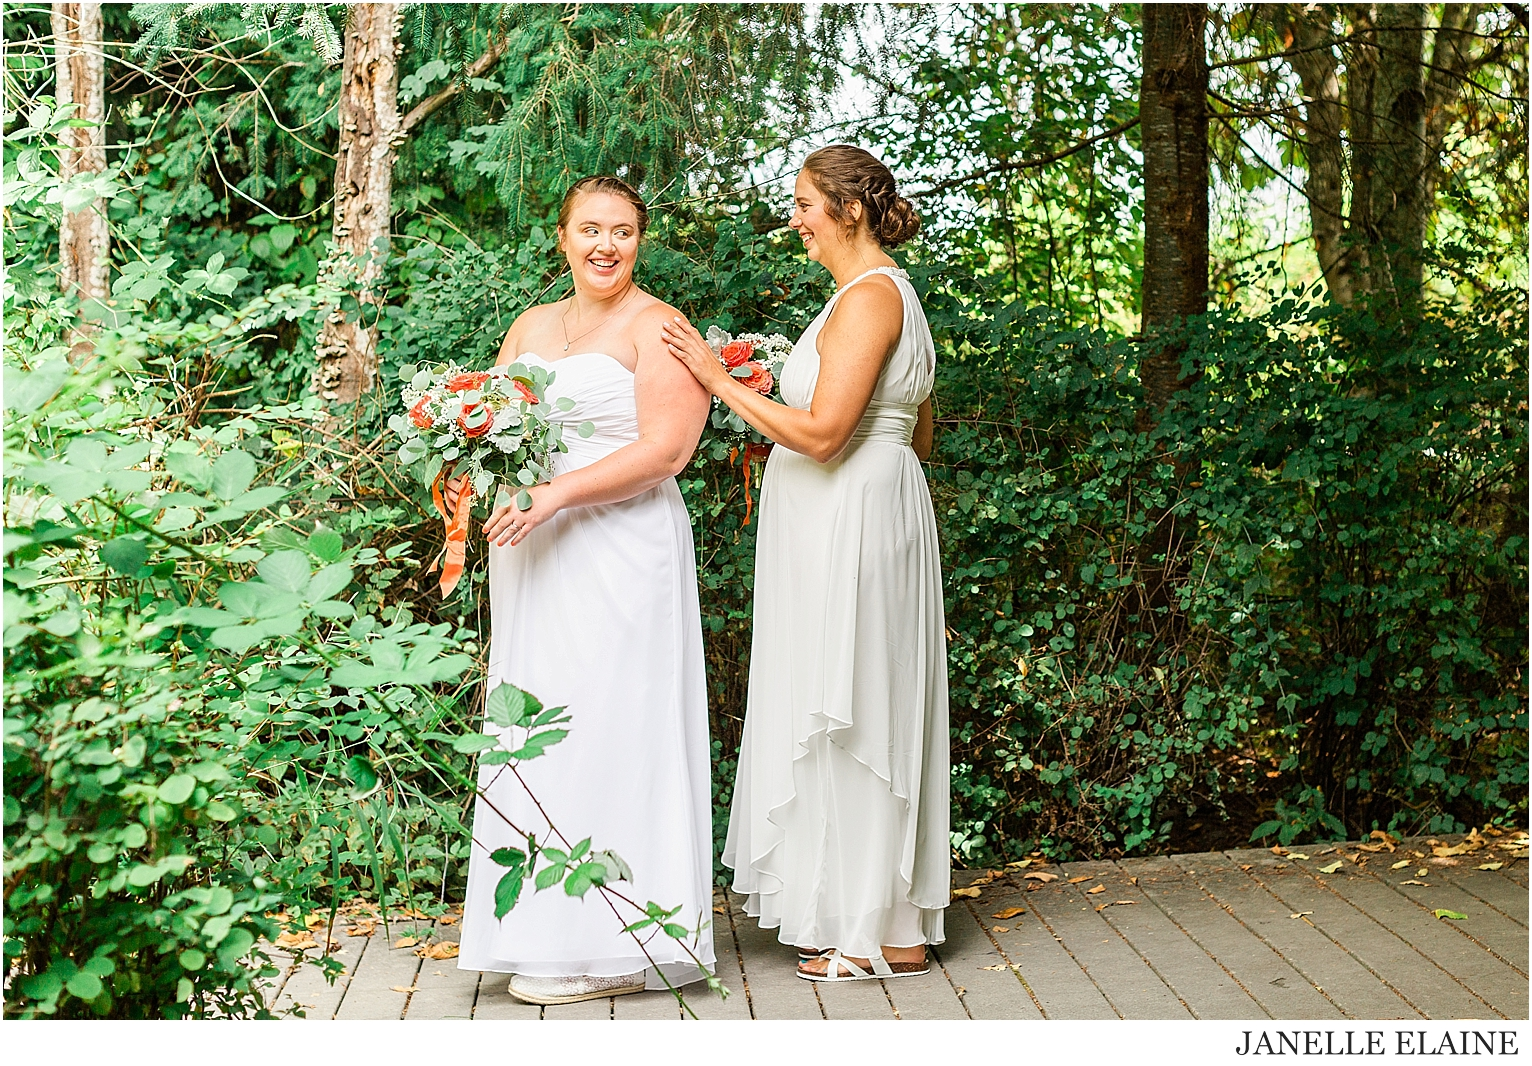 liz and christina lanning-first look and portraits-luther burbank park-janelle elaine photography-21.jpg